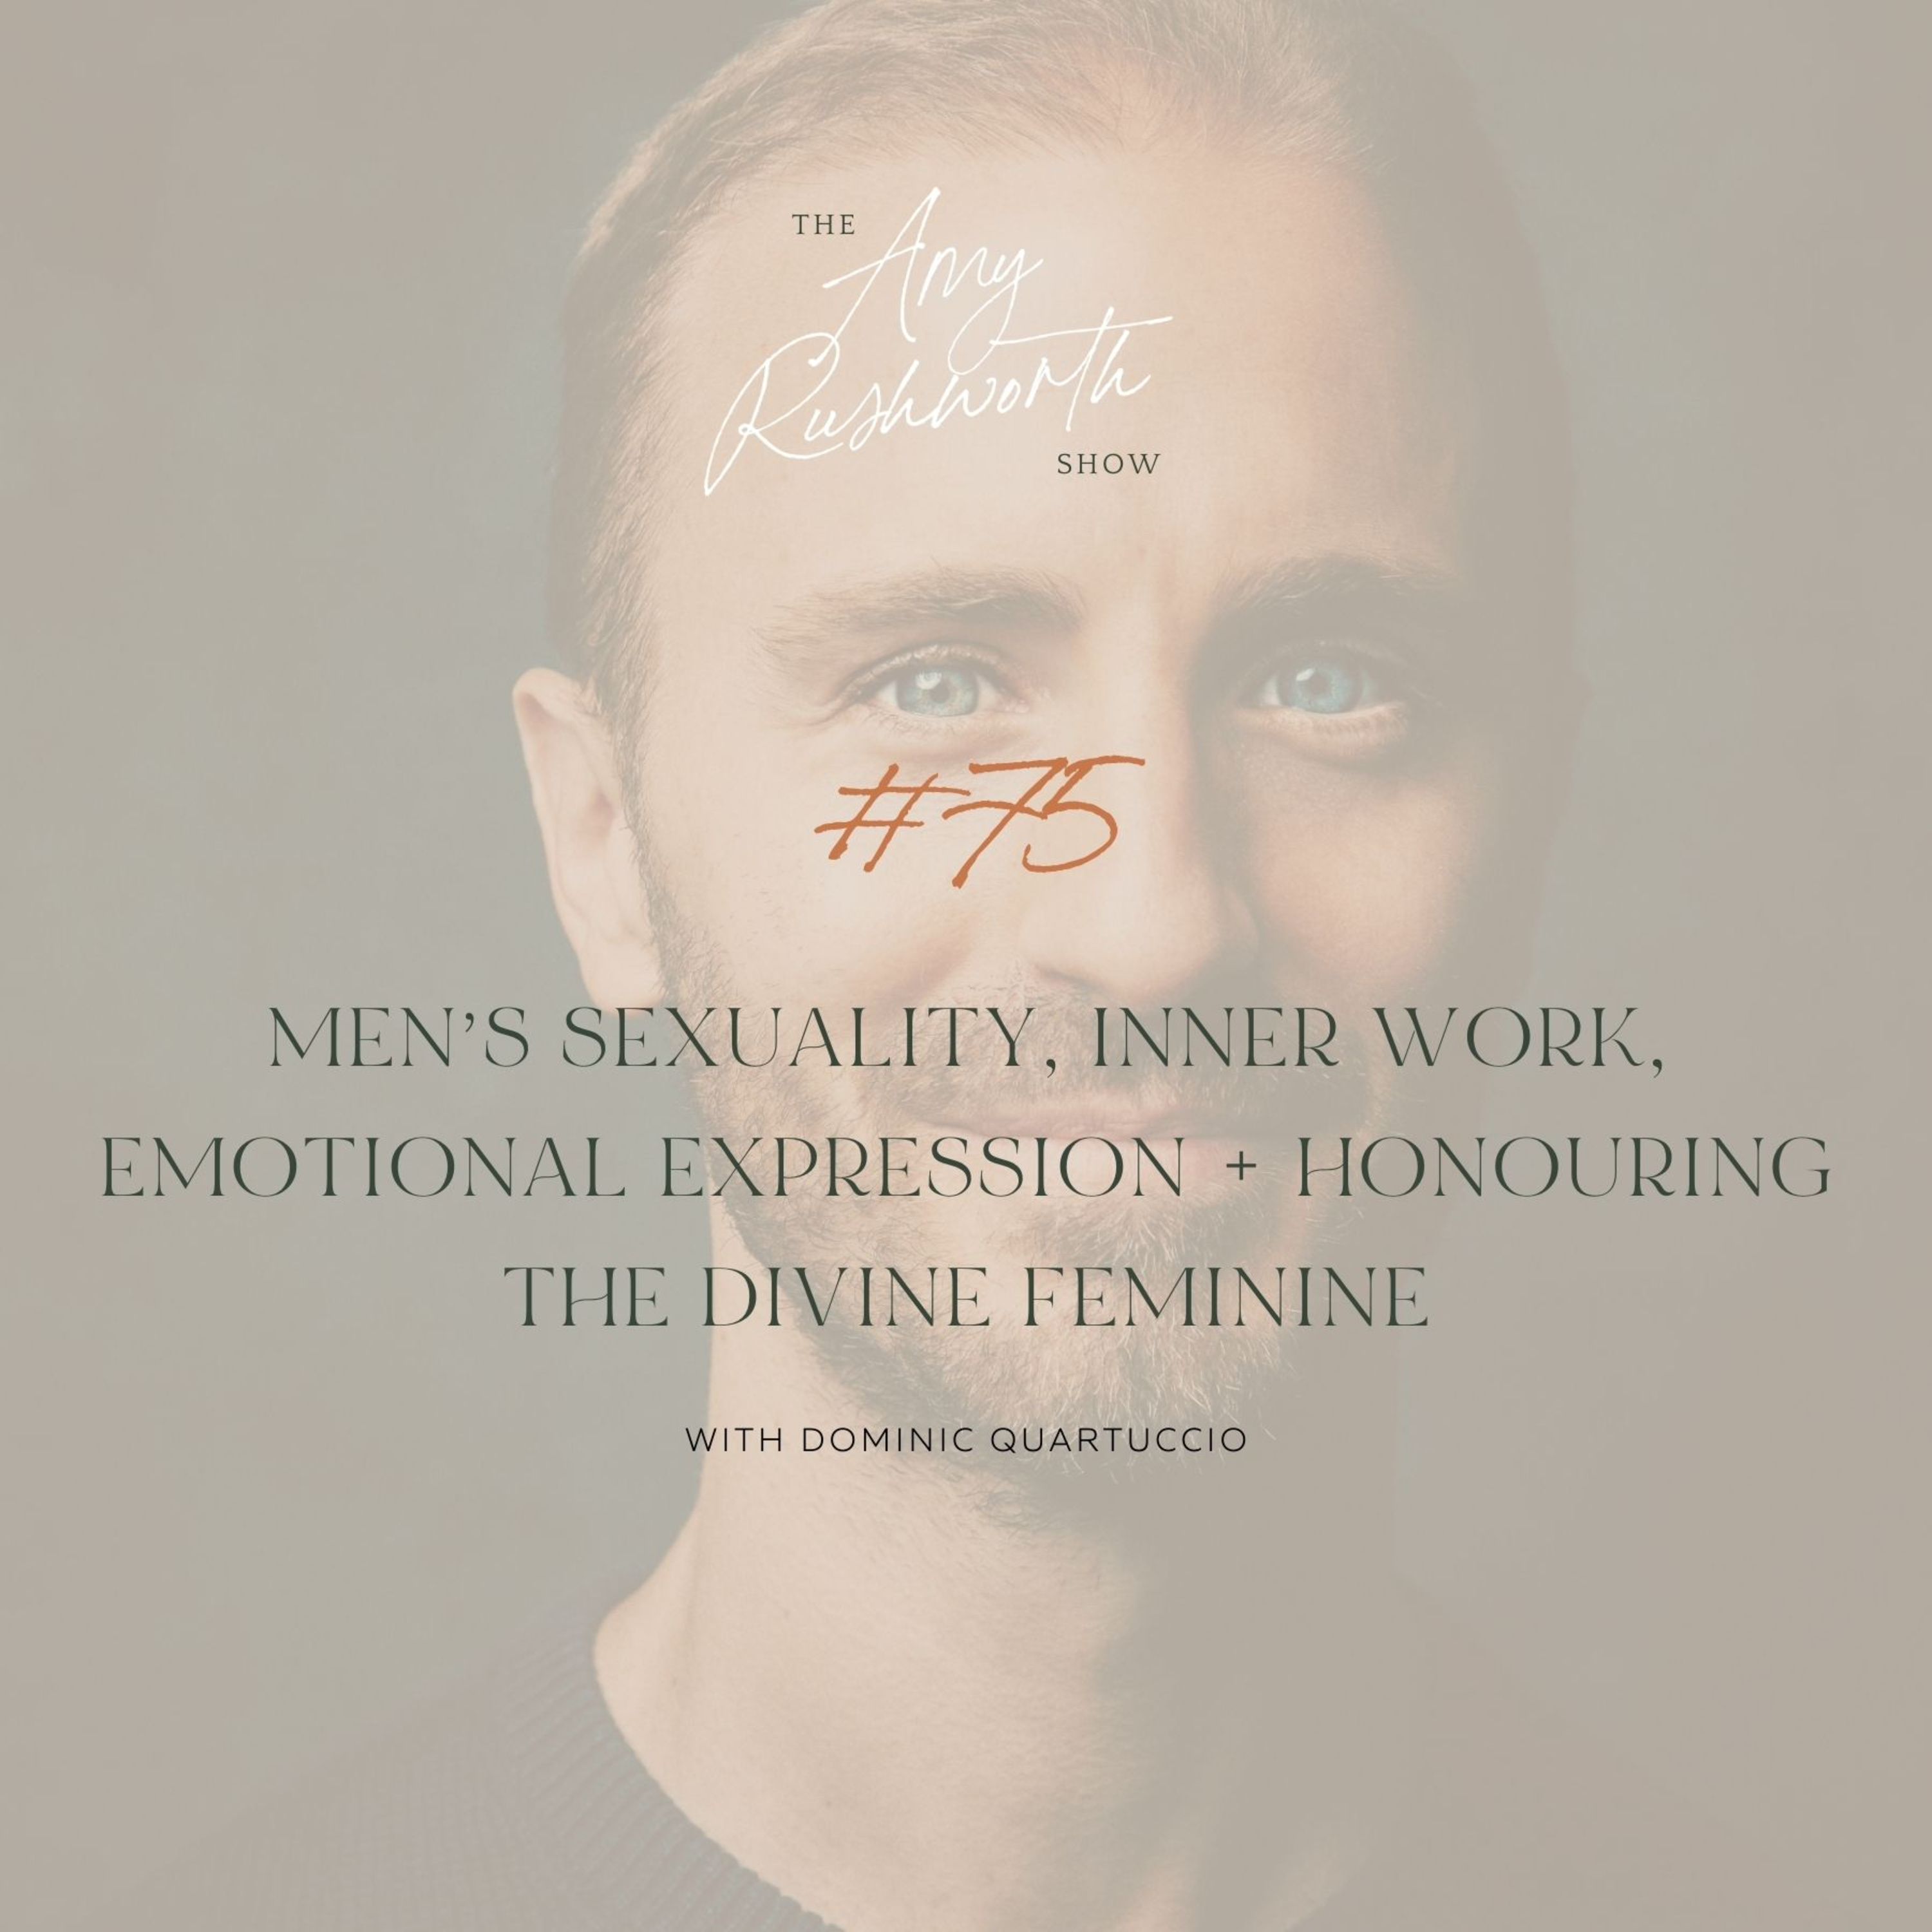 75 - Men's Sexuality, Inner Work, Emotional Expression + Honouring the Divine Feminine with Dominick Quartuccio